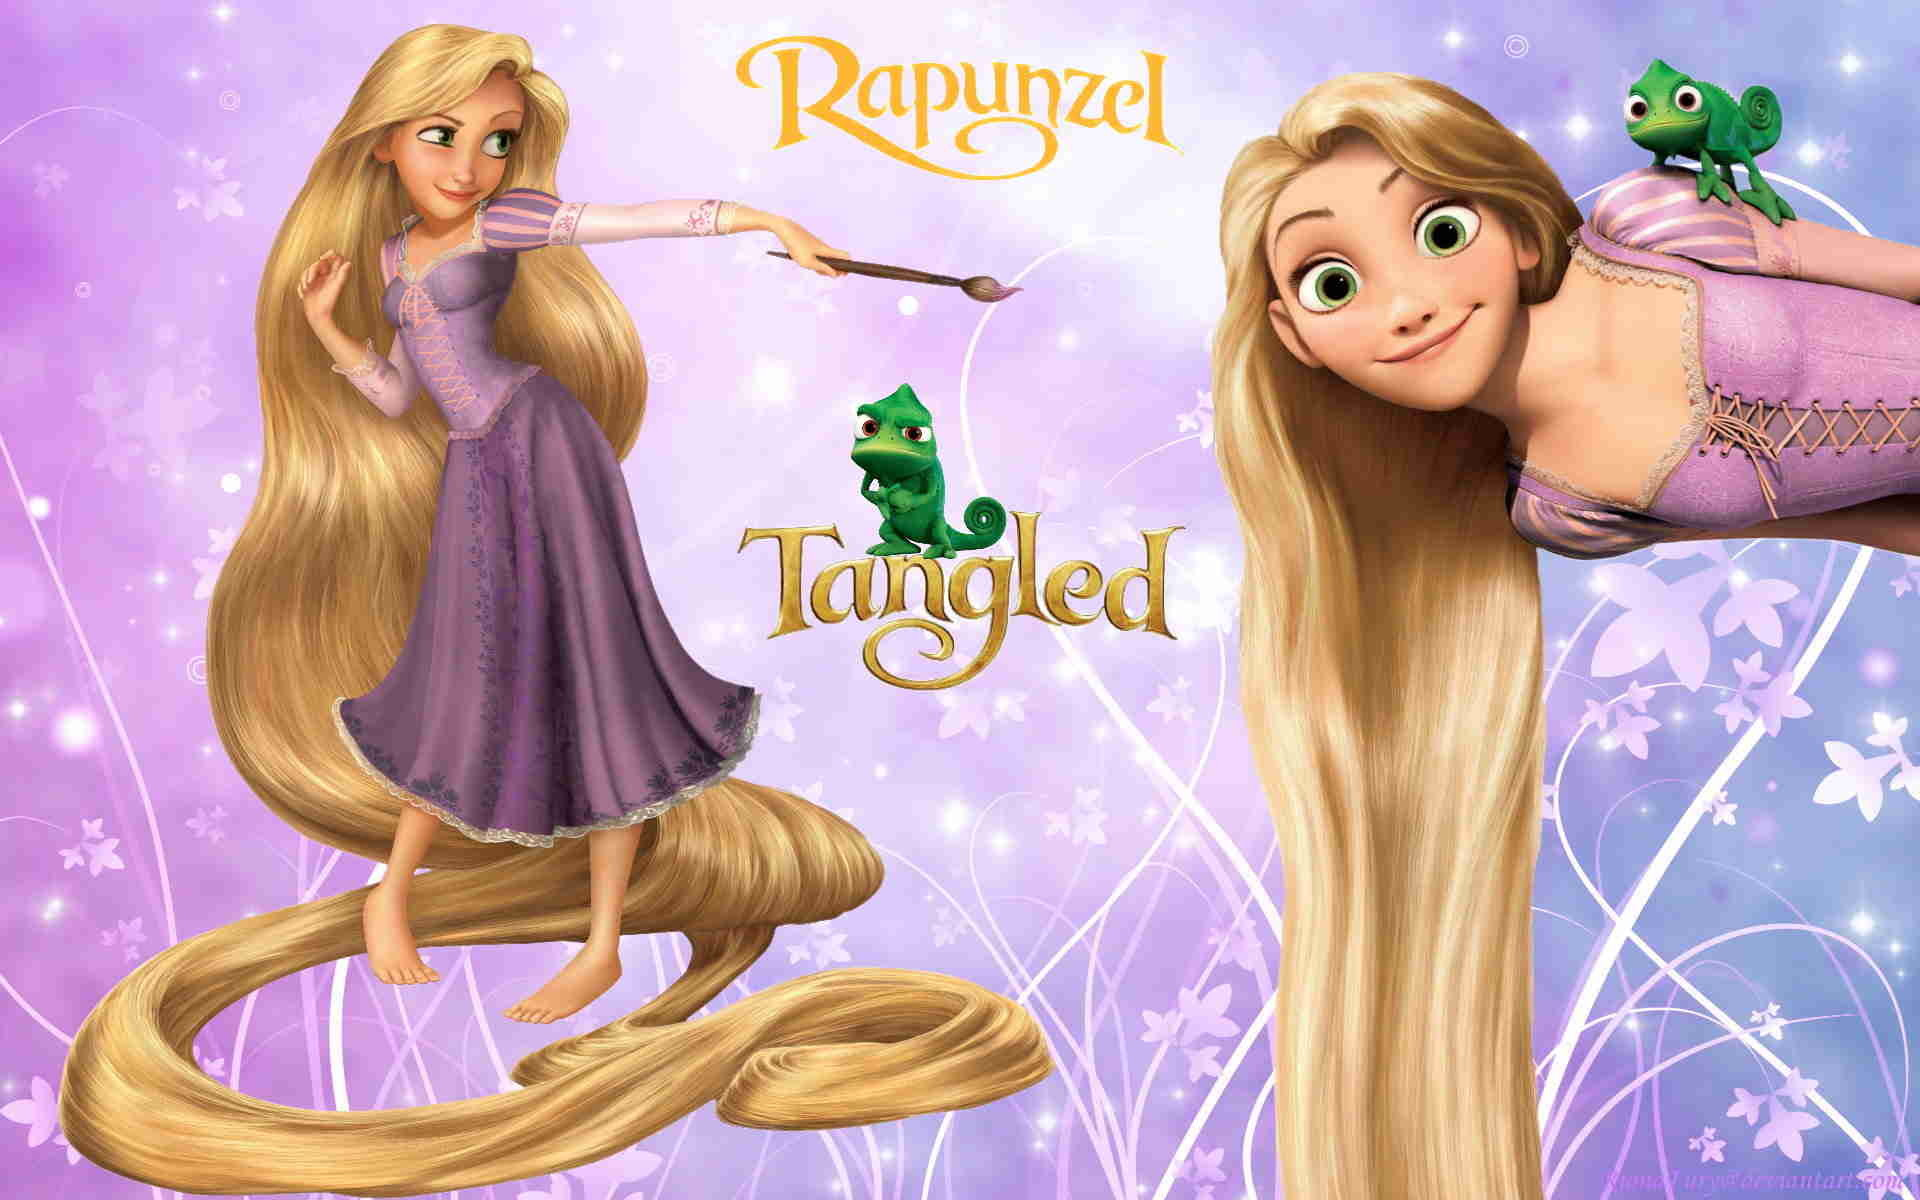 HD Wallpaper and background photos of Disney Princess Rapunzel for fans of Tangled  images.